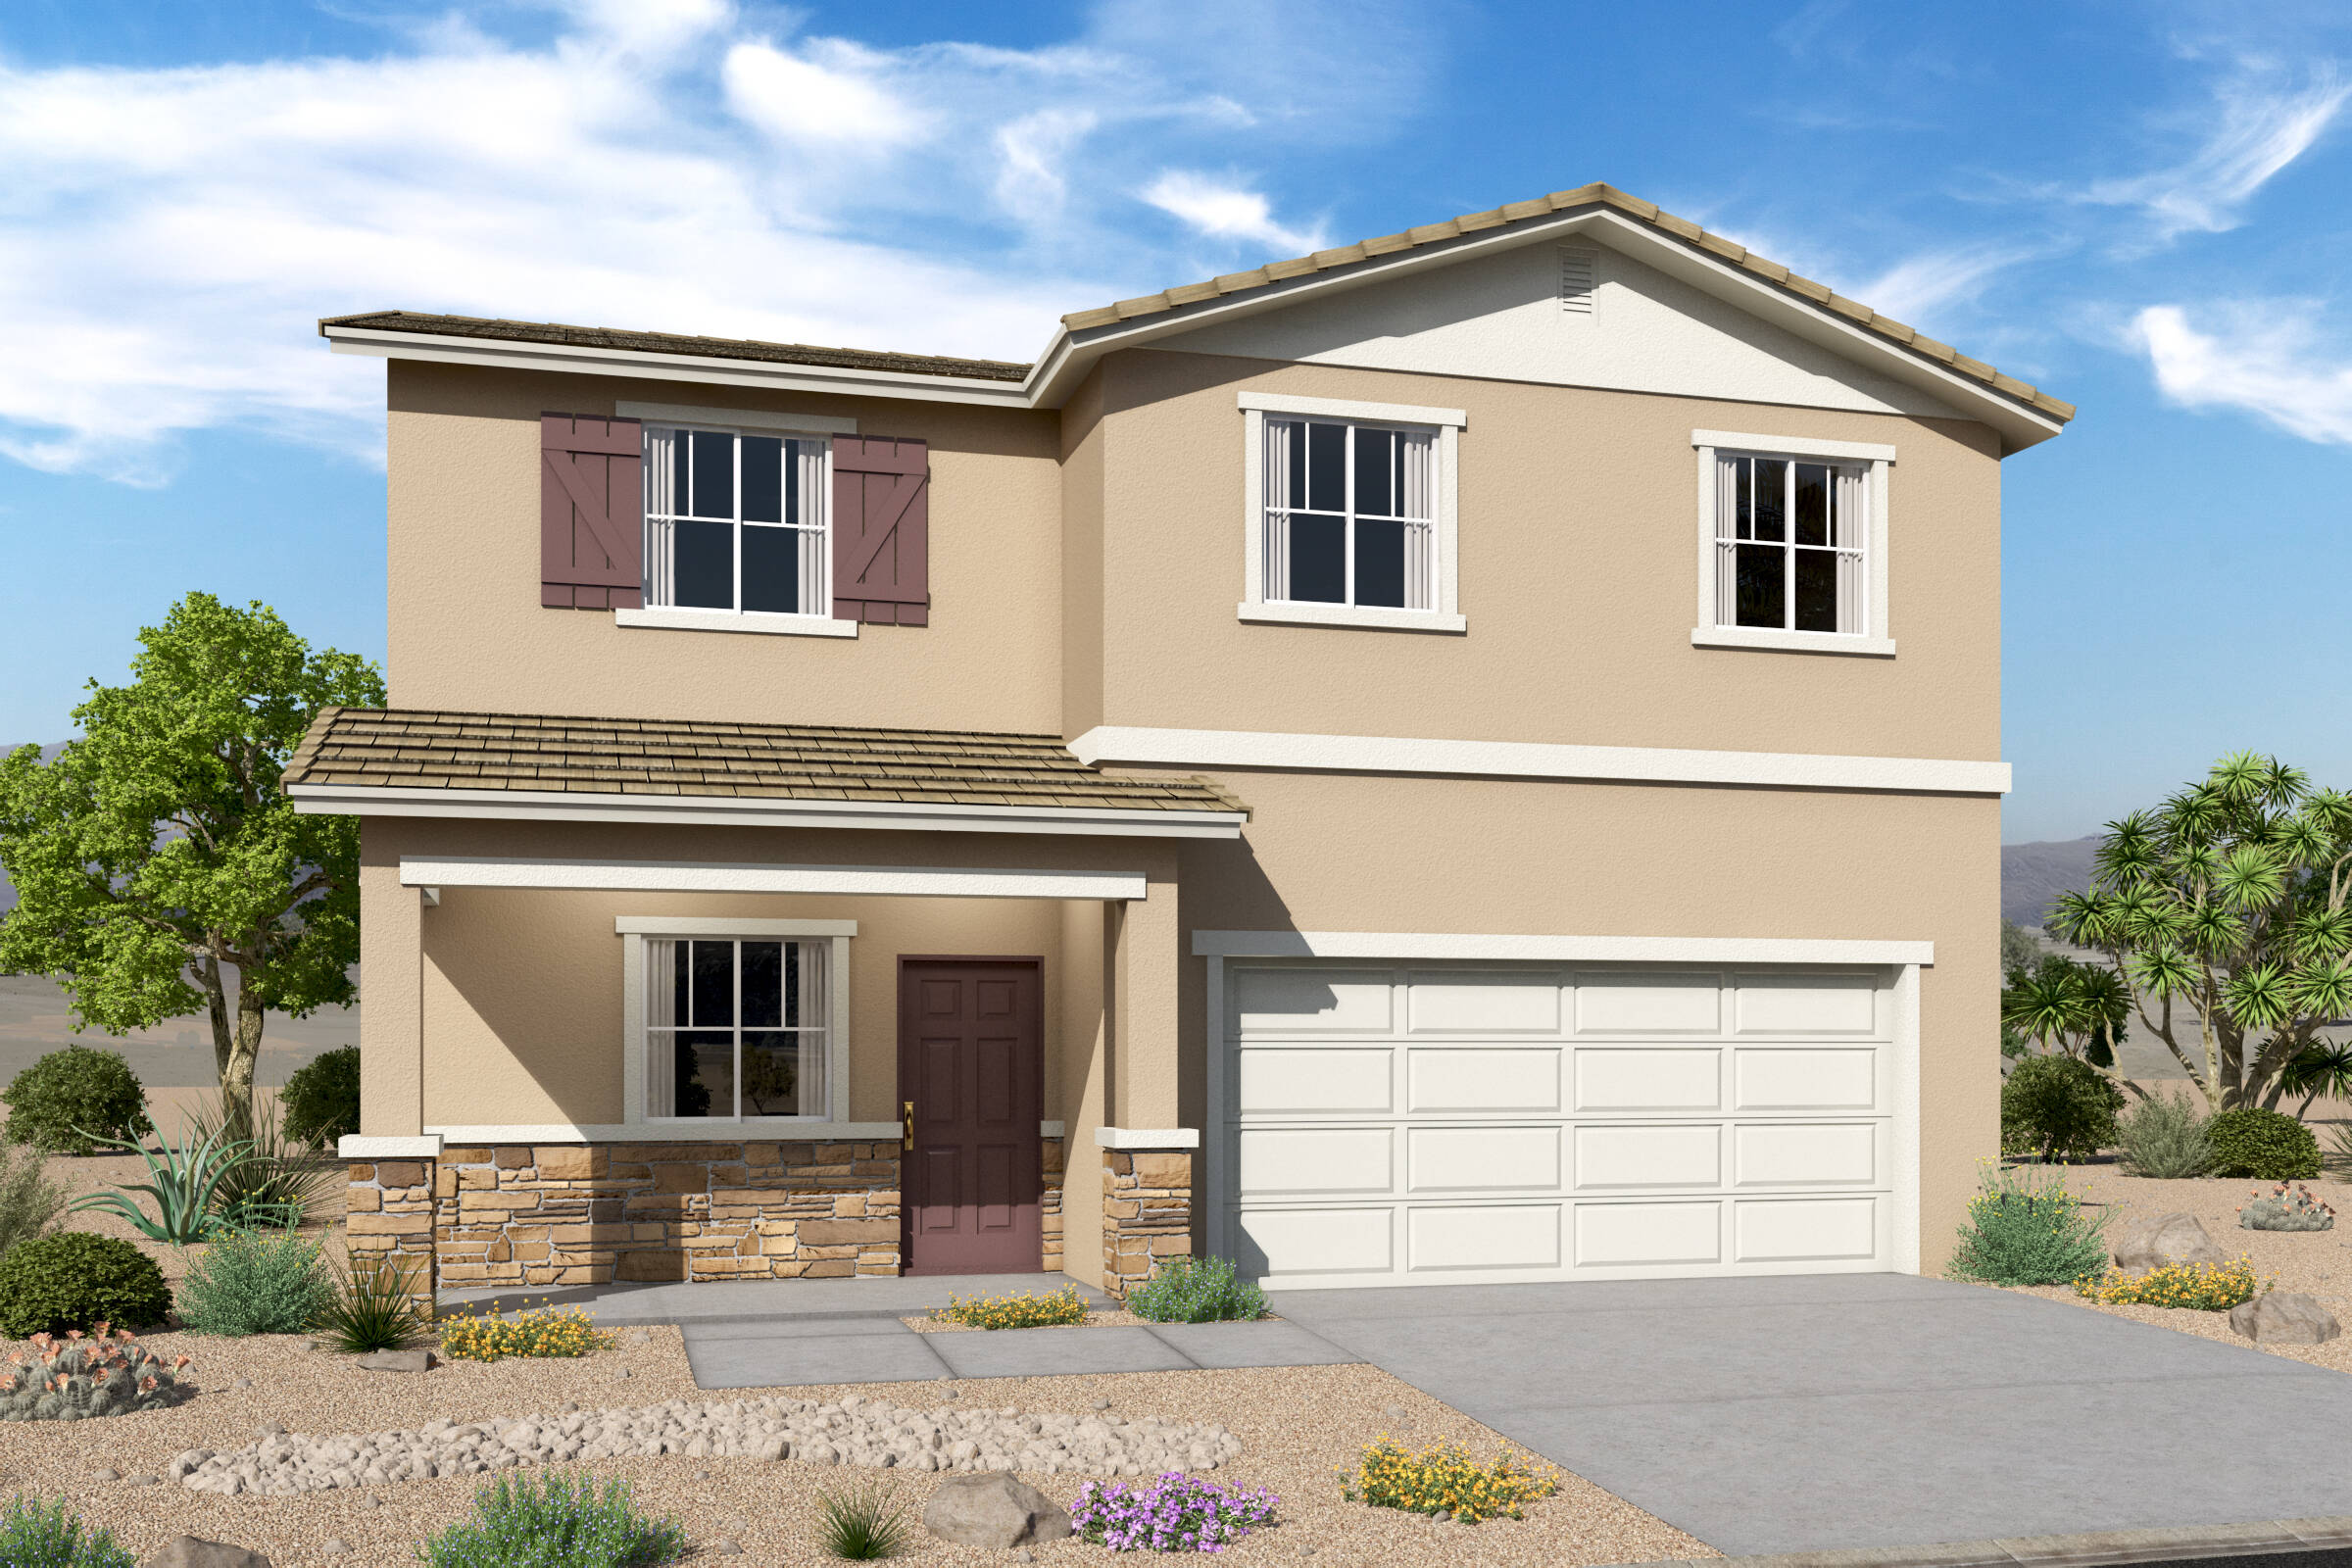 3576 jamboree e craftsman new homes aspire at montana vista